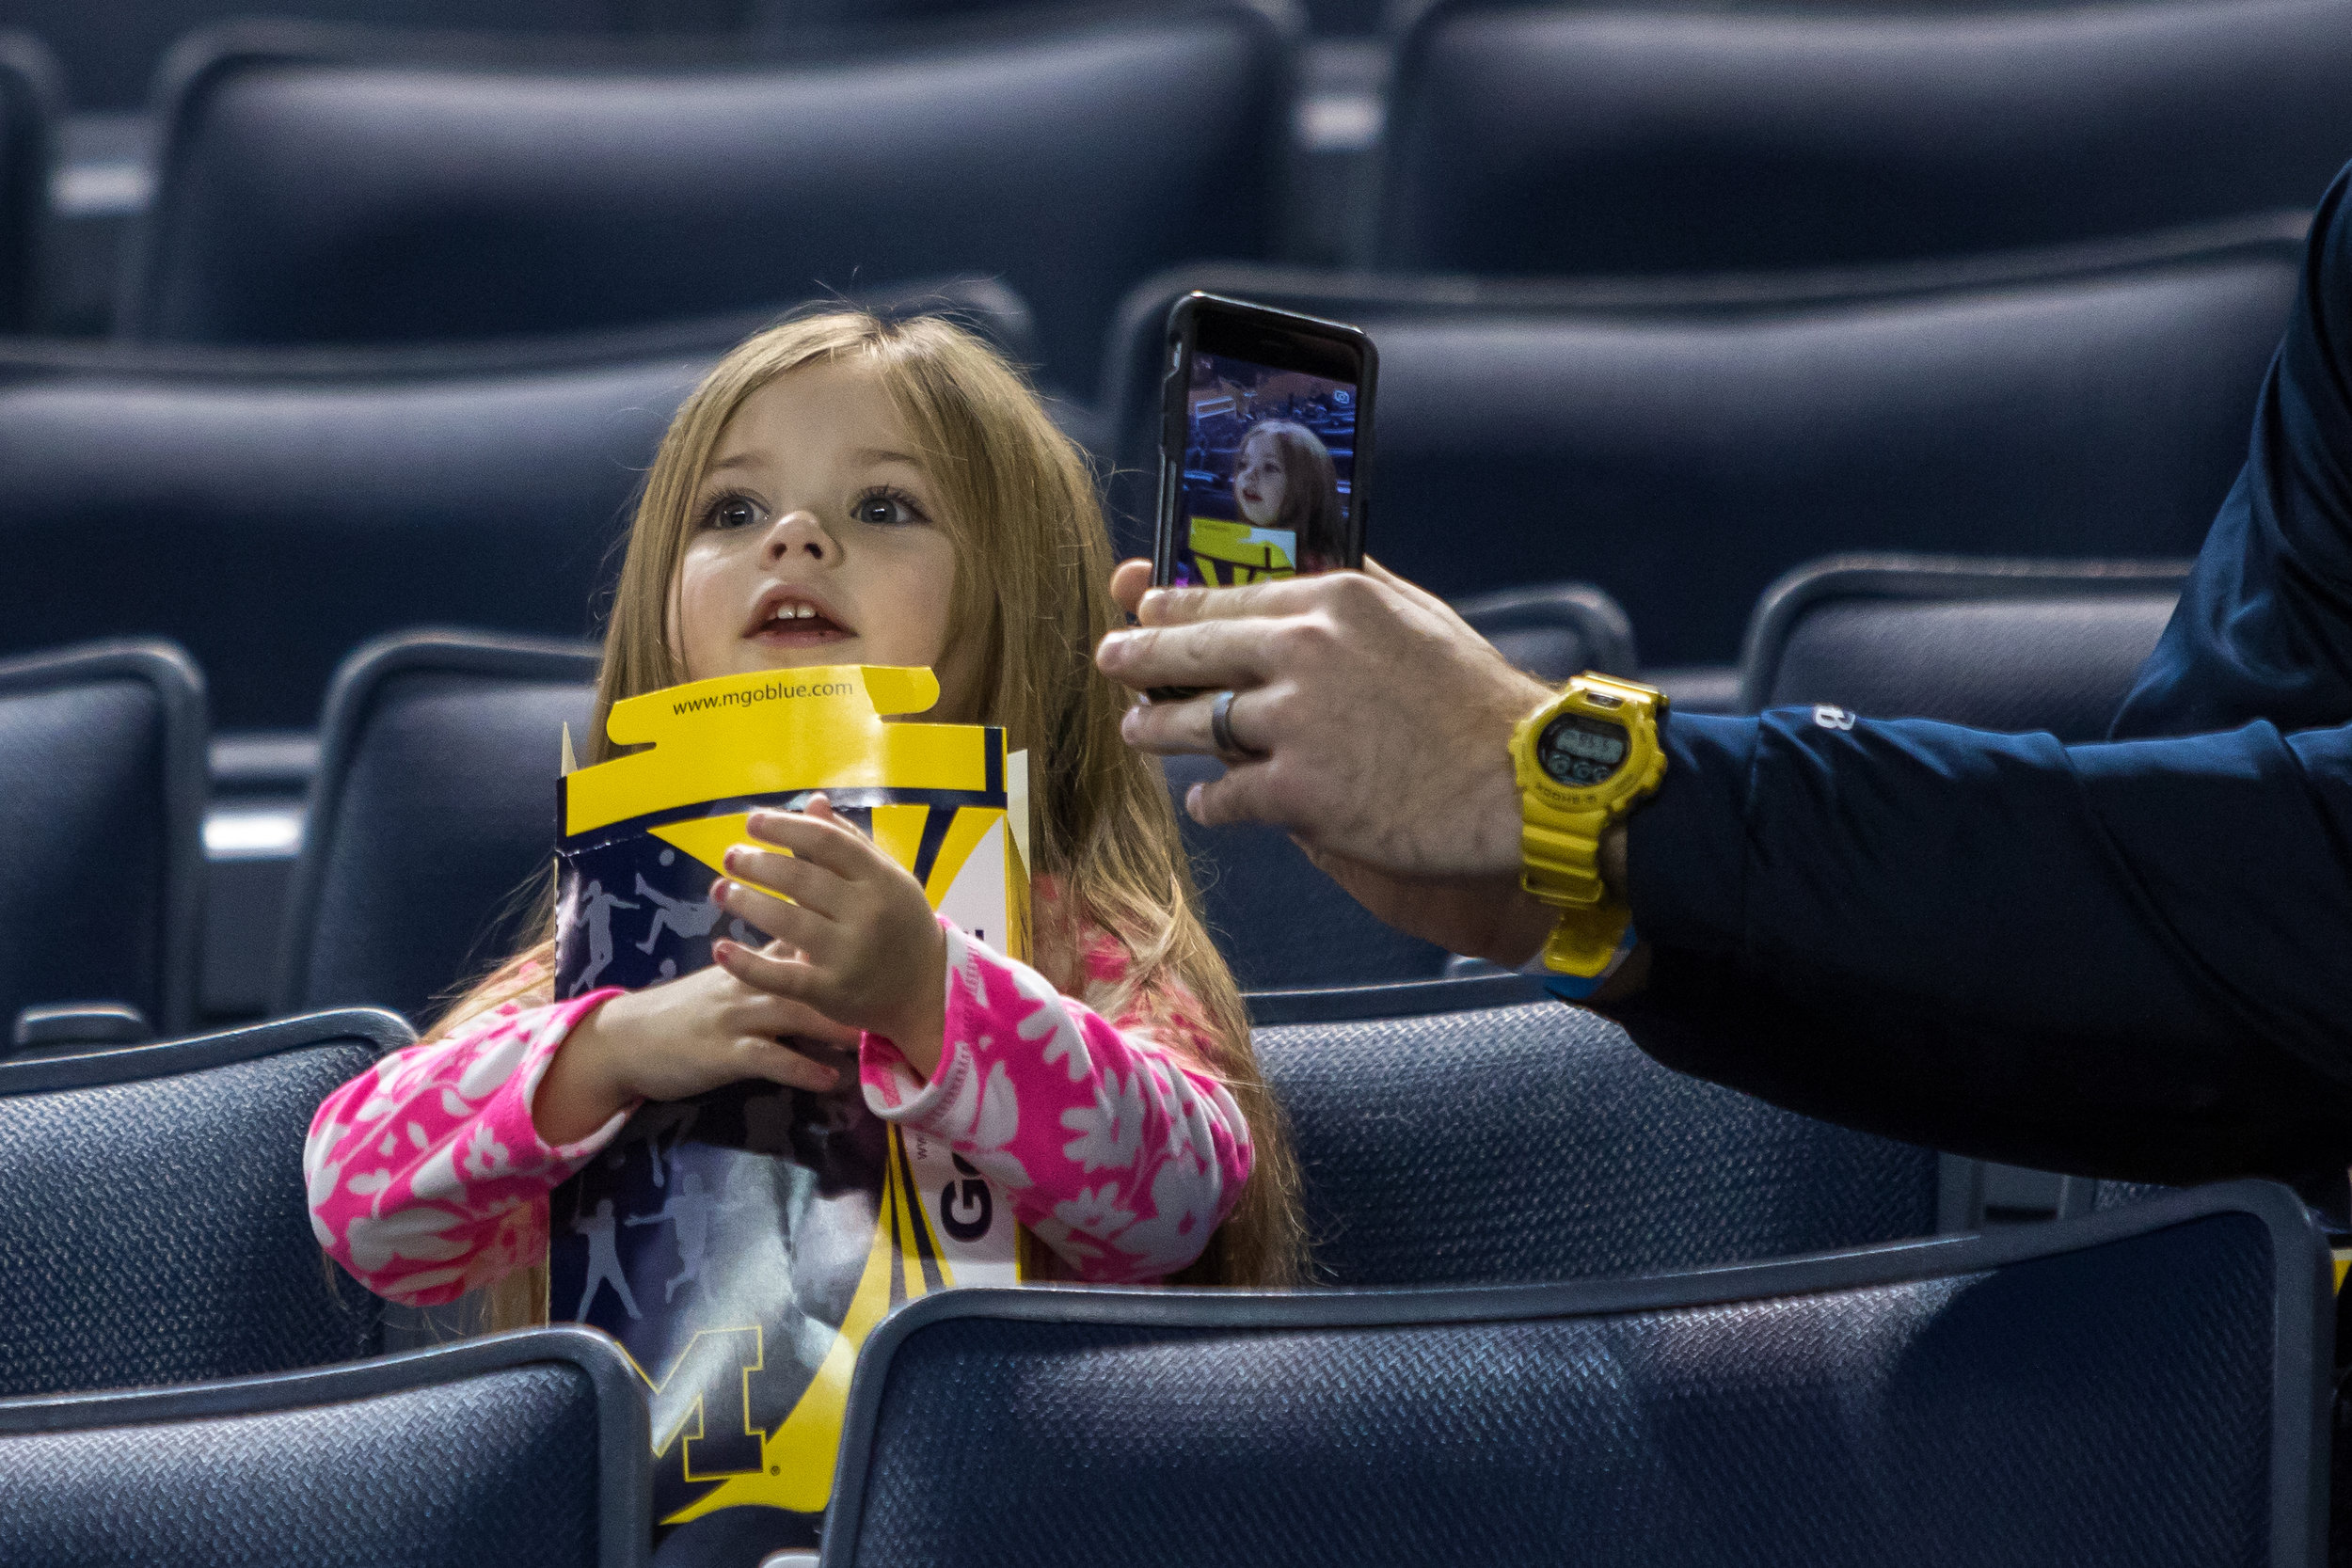 Dirk Roberts takes a photograph of his daughter Ava, 3, before tipoff between Michigan and Mount St. Mary's at the Crisler Center on Saturday, November 26, 2016. Matt Weigand | The Ann Arbor News